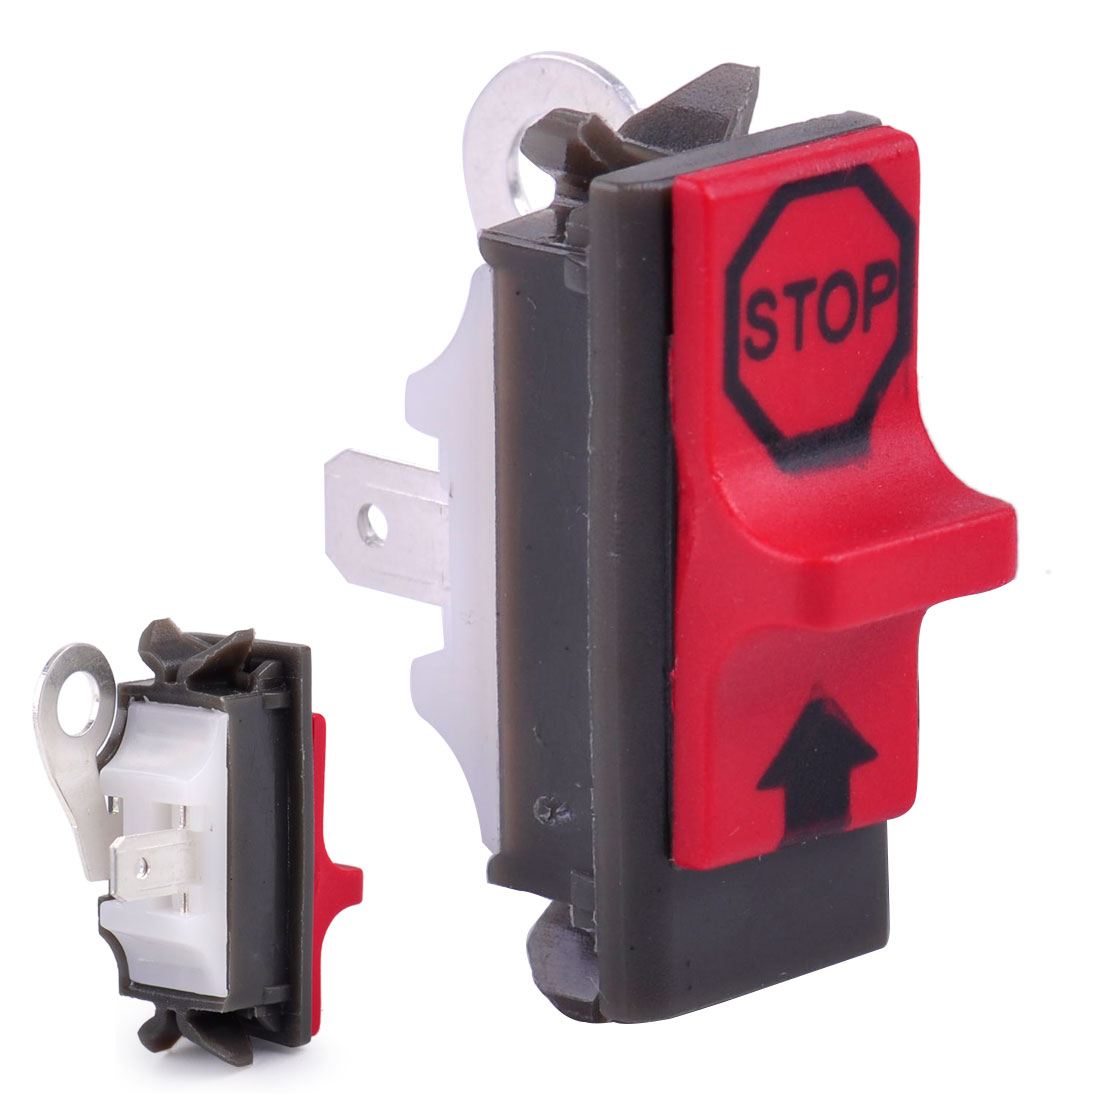 LETAOSK Gas Chainsaw Engine Motor Kill Stop Switch On-off Fit For Husqvarna 41 42 50 51 55 61